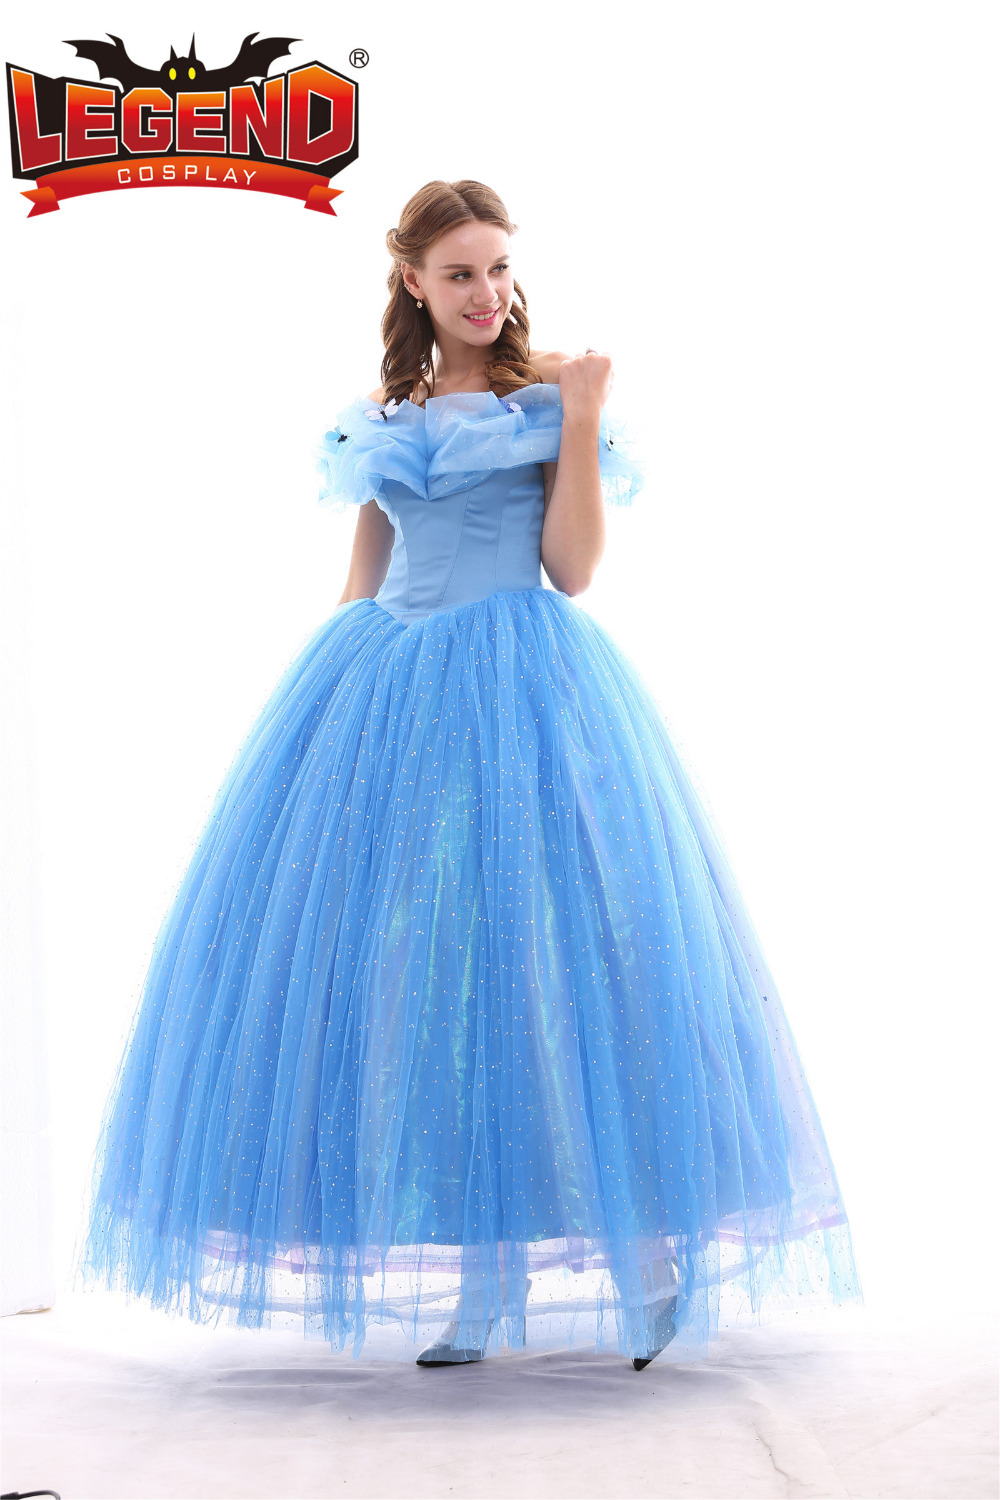 Cinderella Princess Dress Costume Adult Wedding Gown Halloween Carnival Birthday Party Cosplay In Movie TV Costumes From Novelty